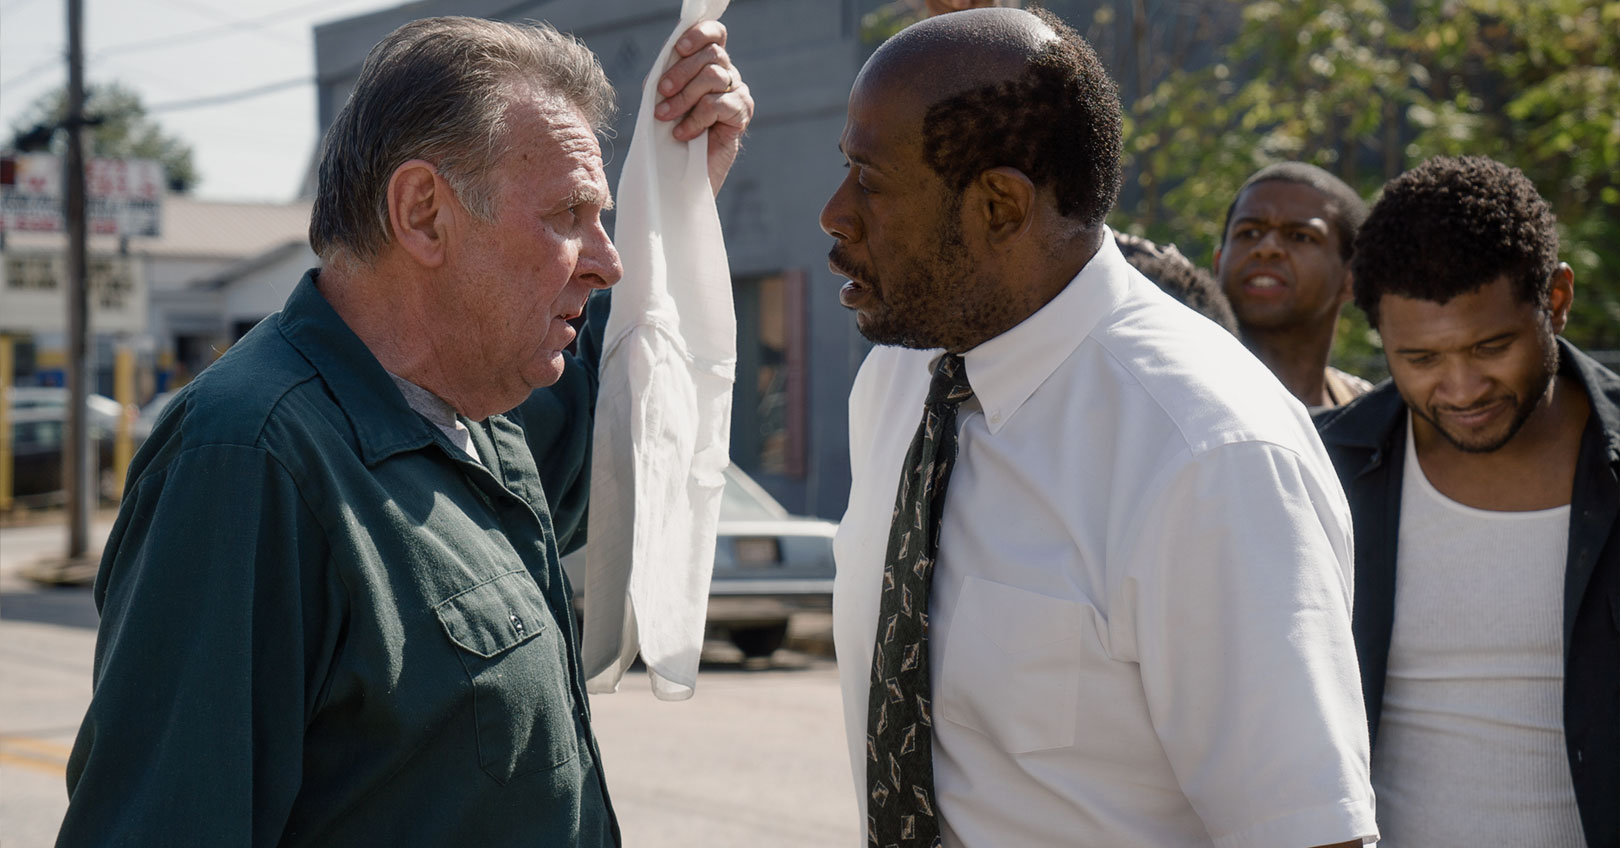 Burden - Tom Wilkinson and Forest Whitaker